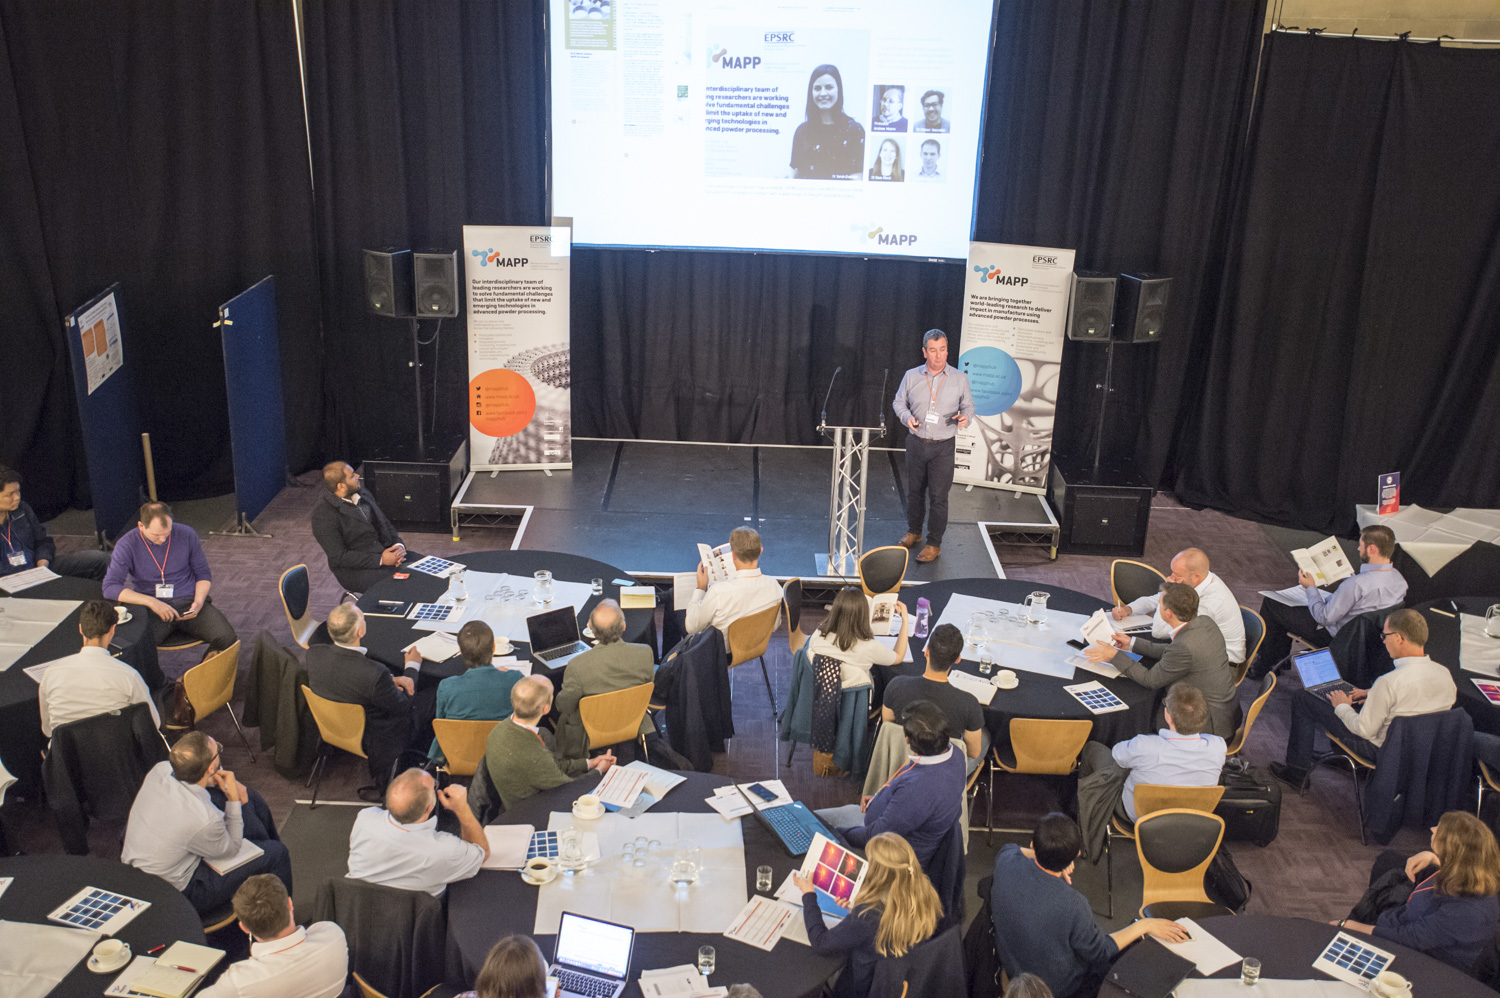 MAPP Industry Partner Briefing 2019